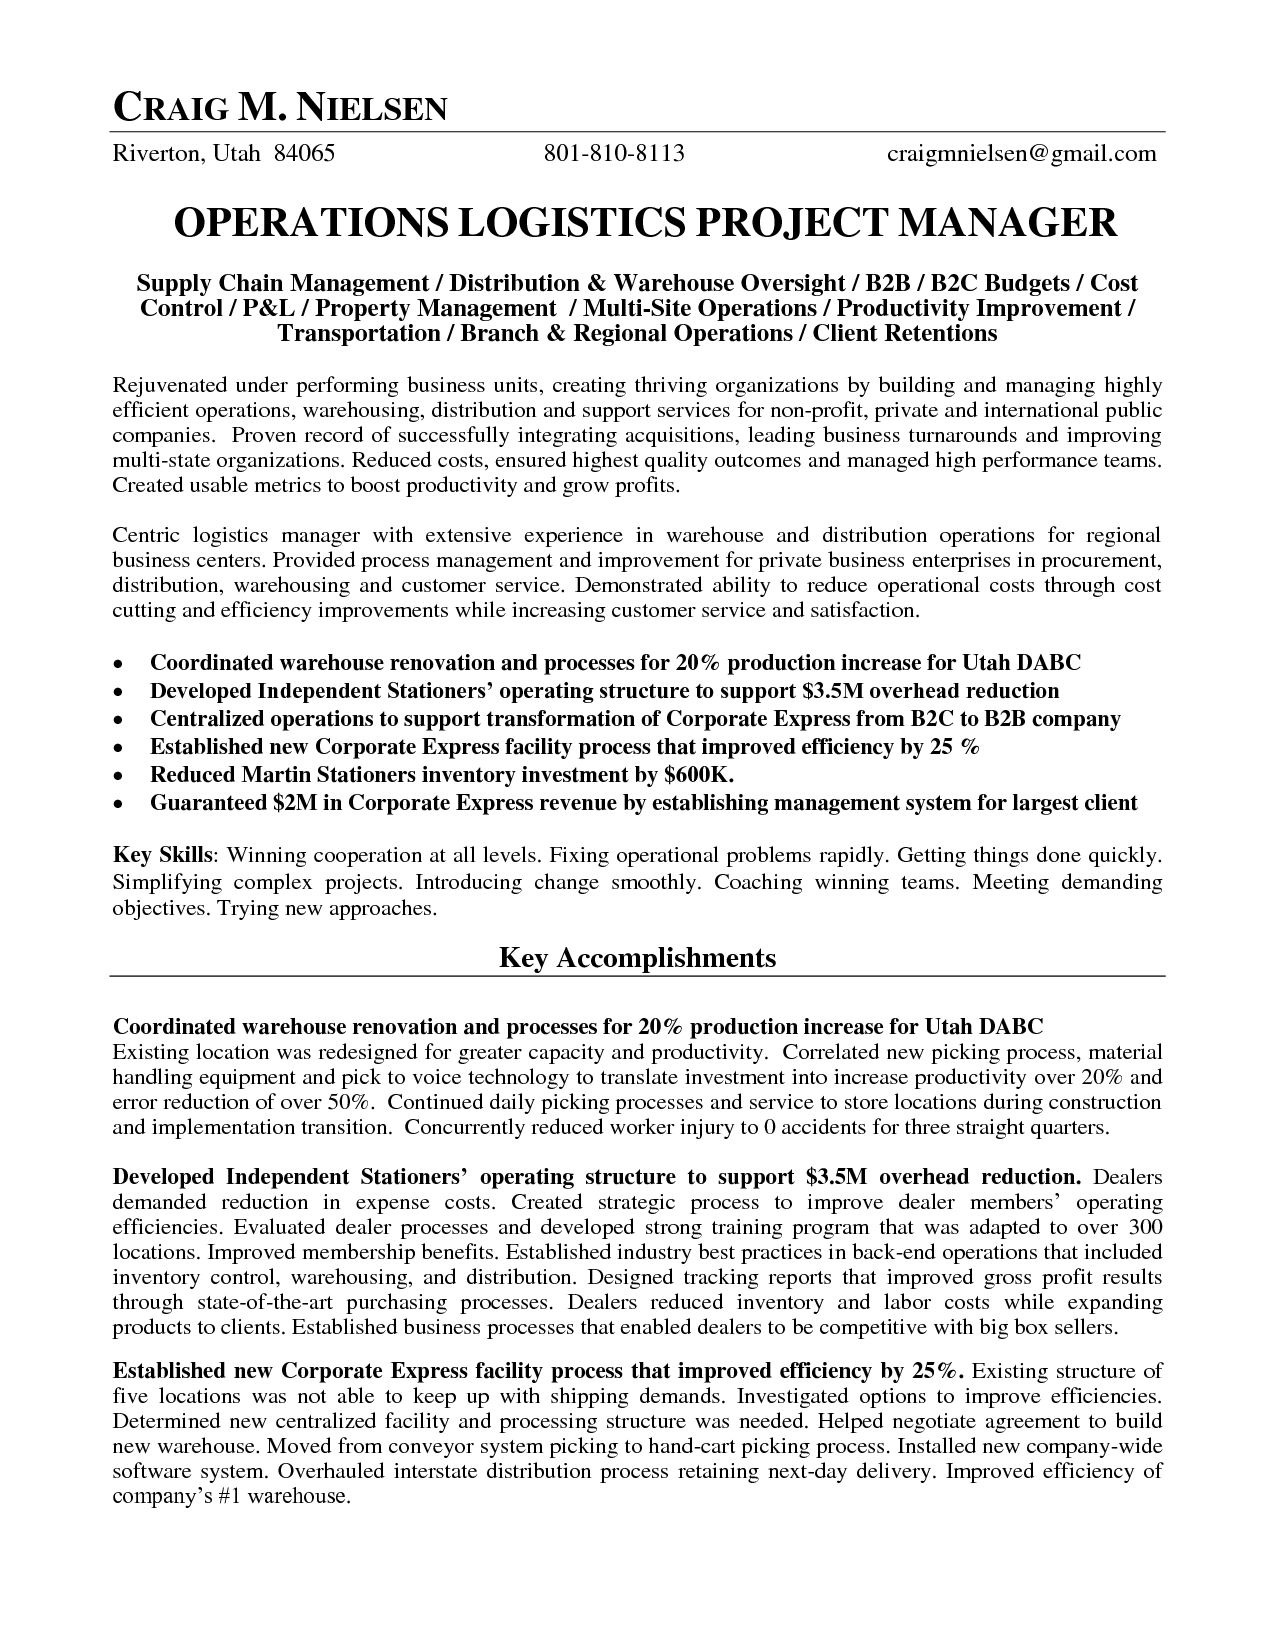 Material Handler Resume Logistics Operations Manager Resume  Operations Logistics Project